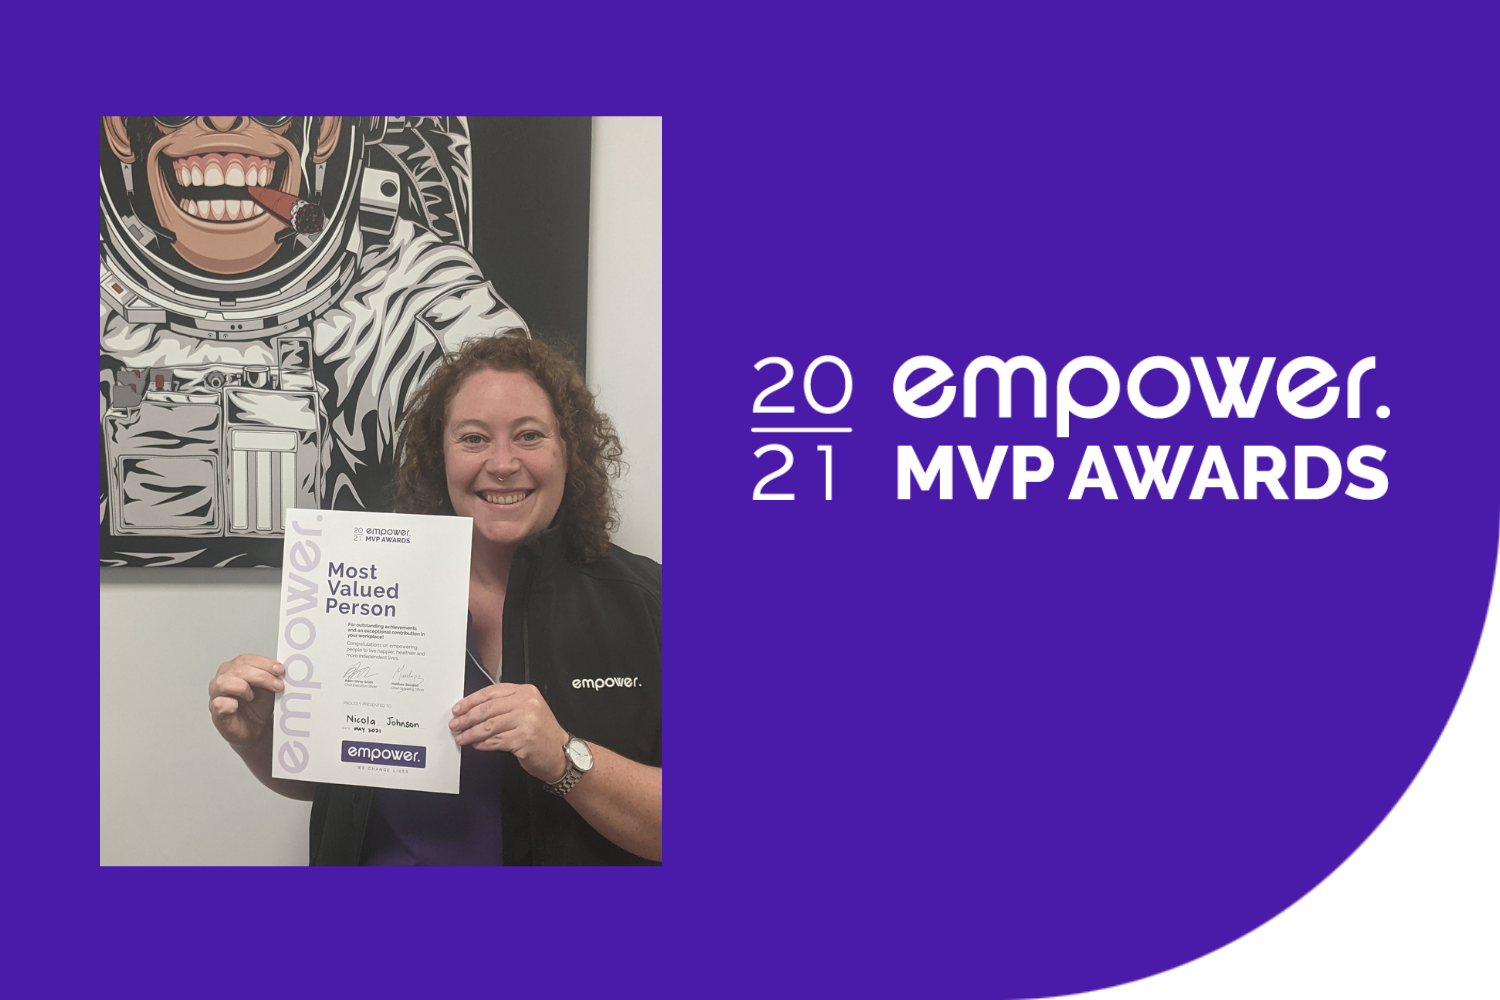 Nicola Johnson - Most Valued Person, May 2021 winner